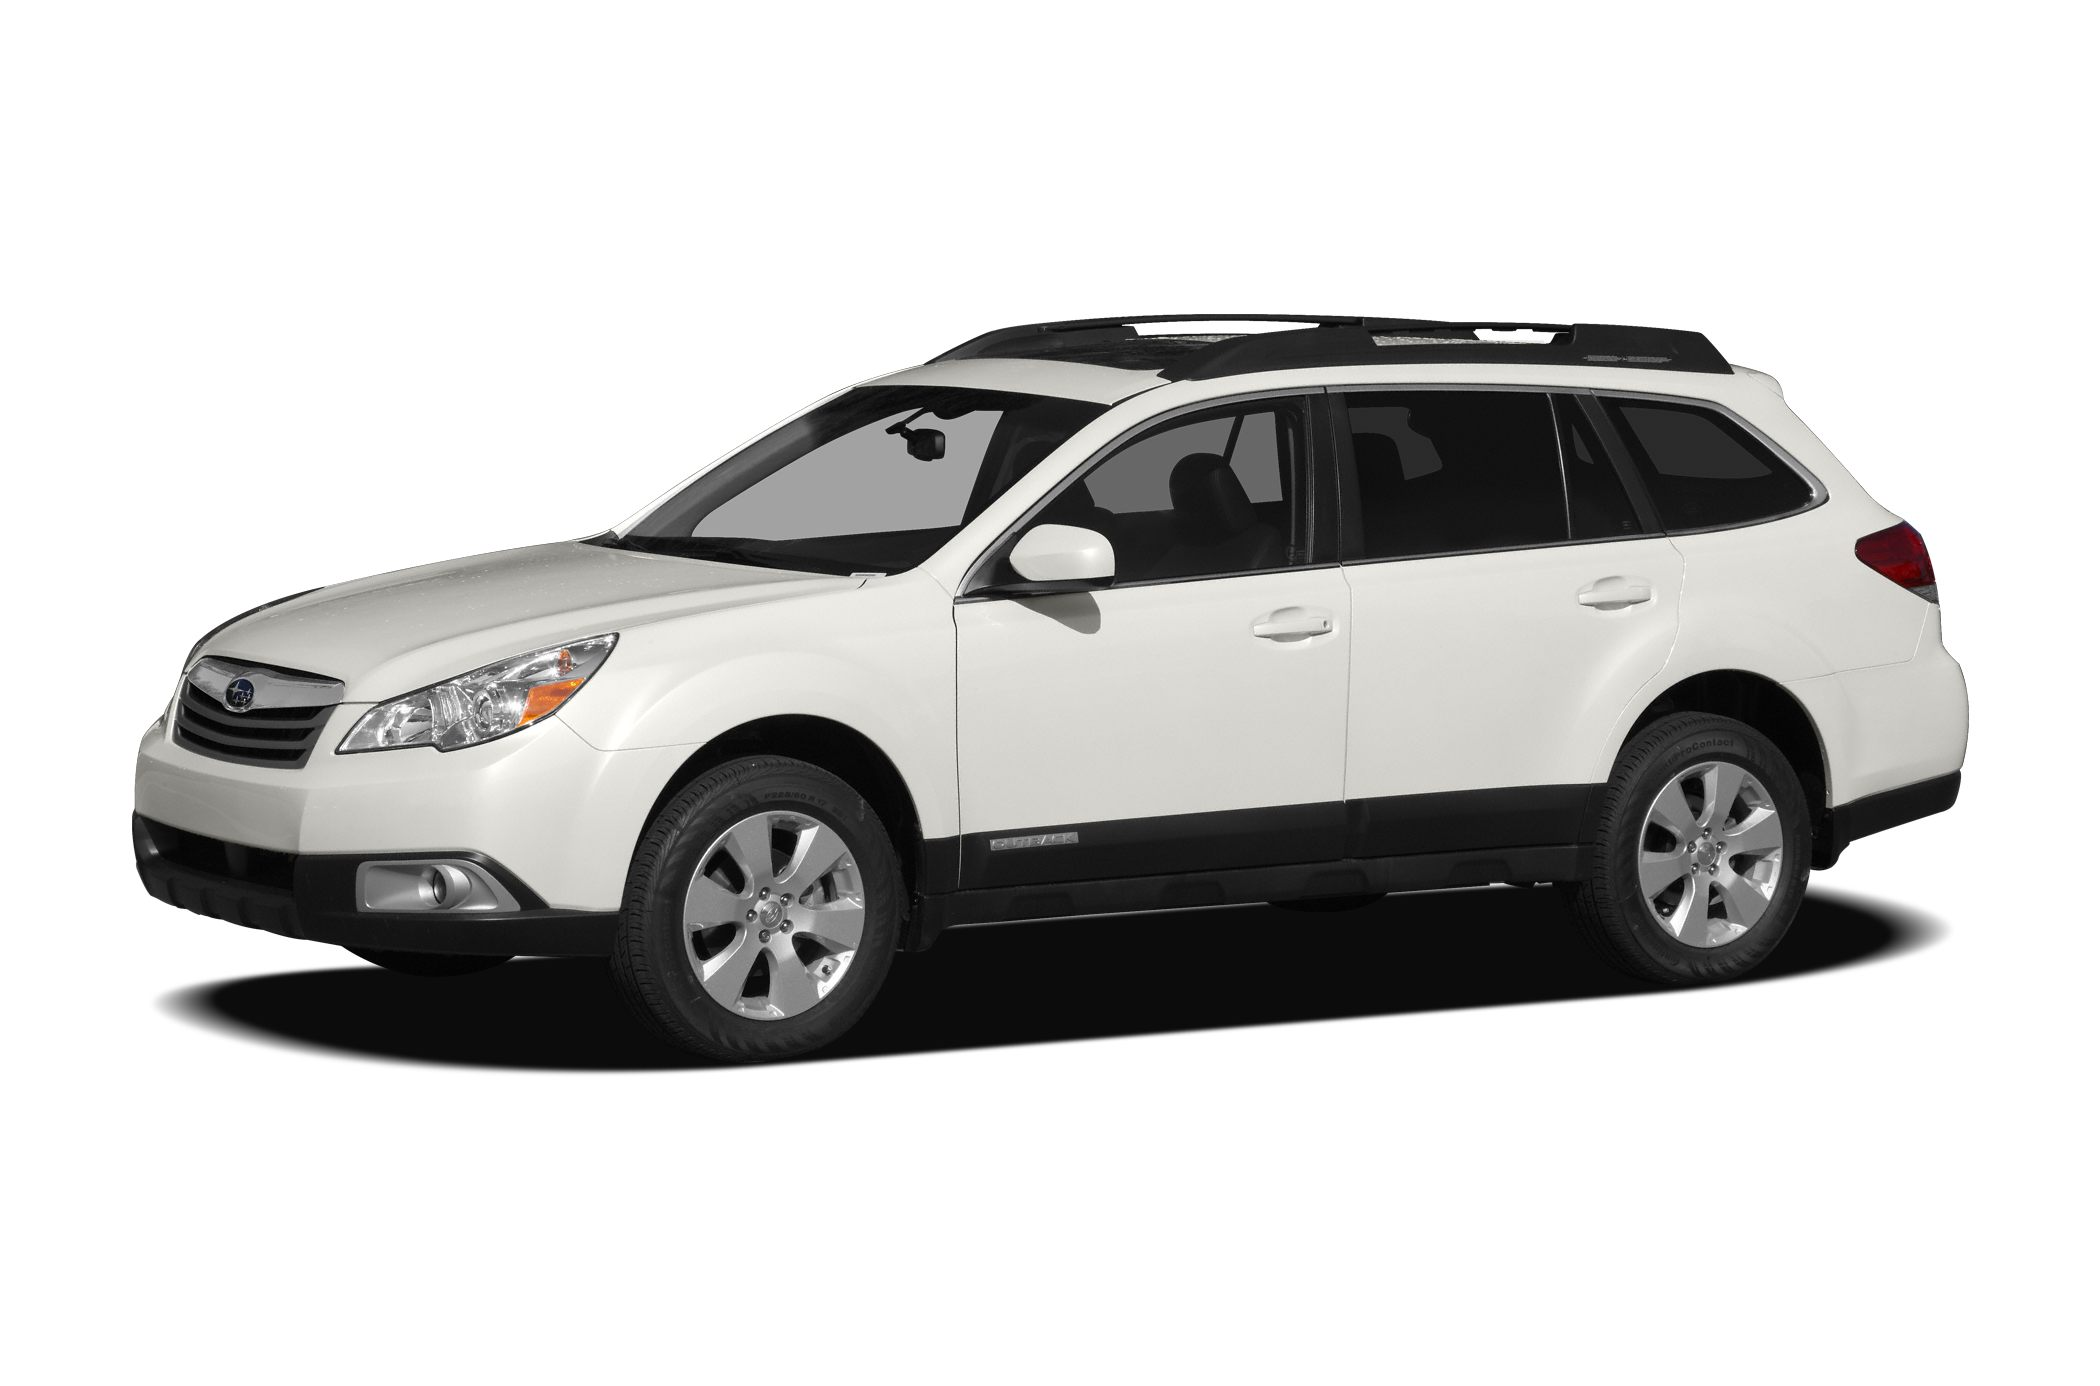 2010 Subaru Outback 2.5 I Premium Wagon for sale in Weaverville for $14,499 with 100,297 miles.